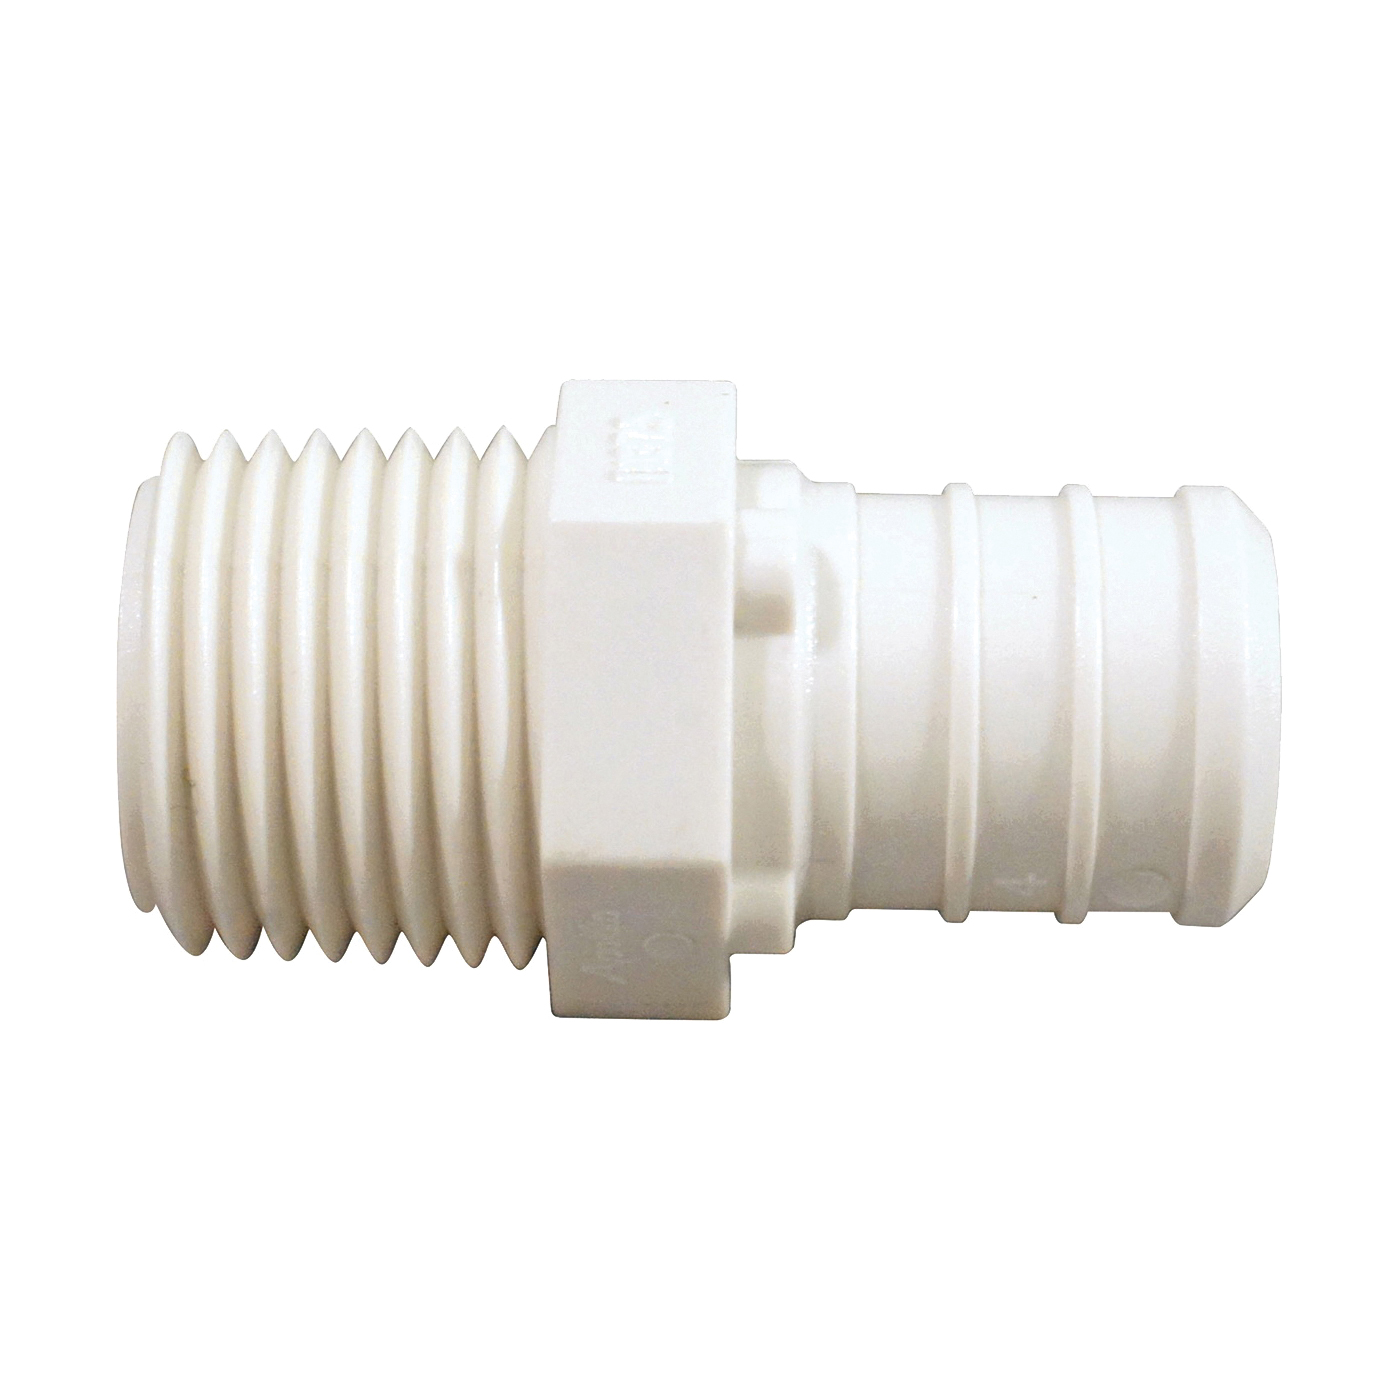 Picture of Apollo ApolloPEX PXPAM34125PK Adapter, 3/4 in Barb, 1/2 in MPT